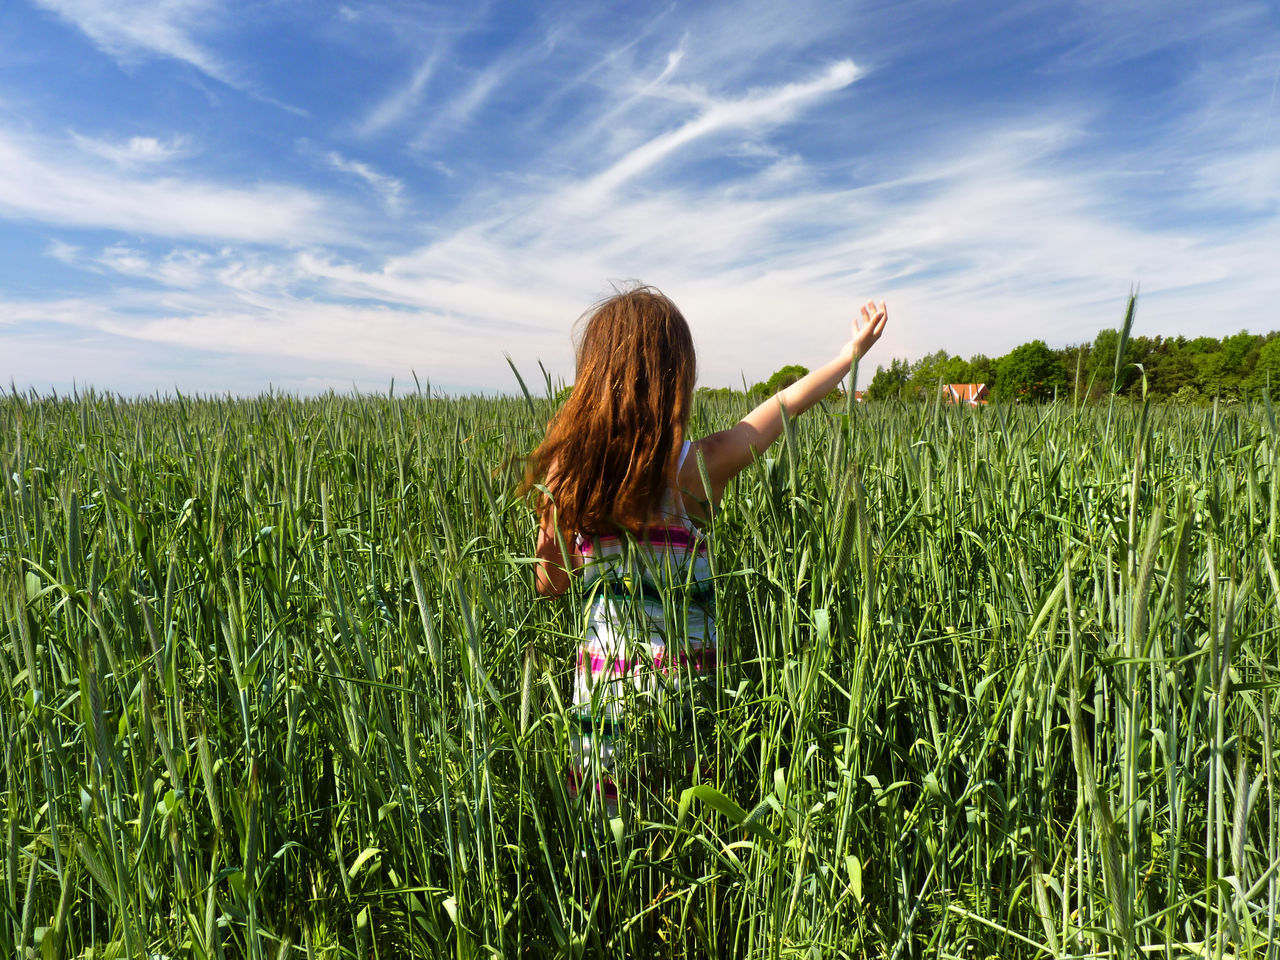 sky, field, long hair, one person, nature, cloud - sky, real people, growth, agriculture, leisure activity, carefree, women, tranquility, day, outdoors, lifestyles, rural scene, beauty in nature, grass, young adult, adult, people